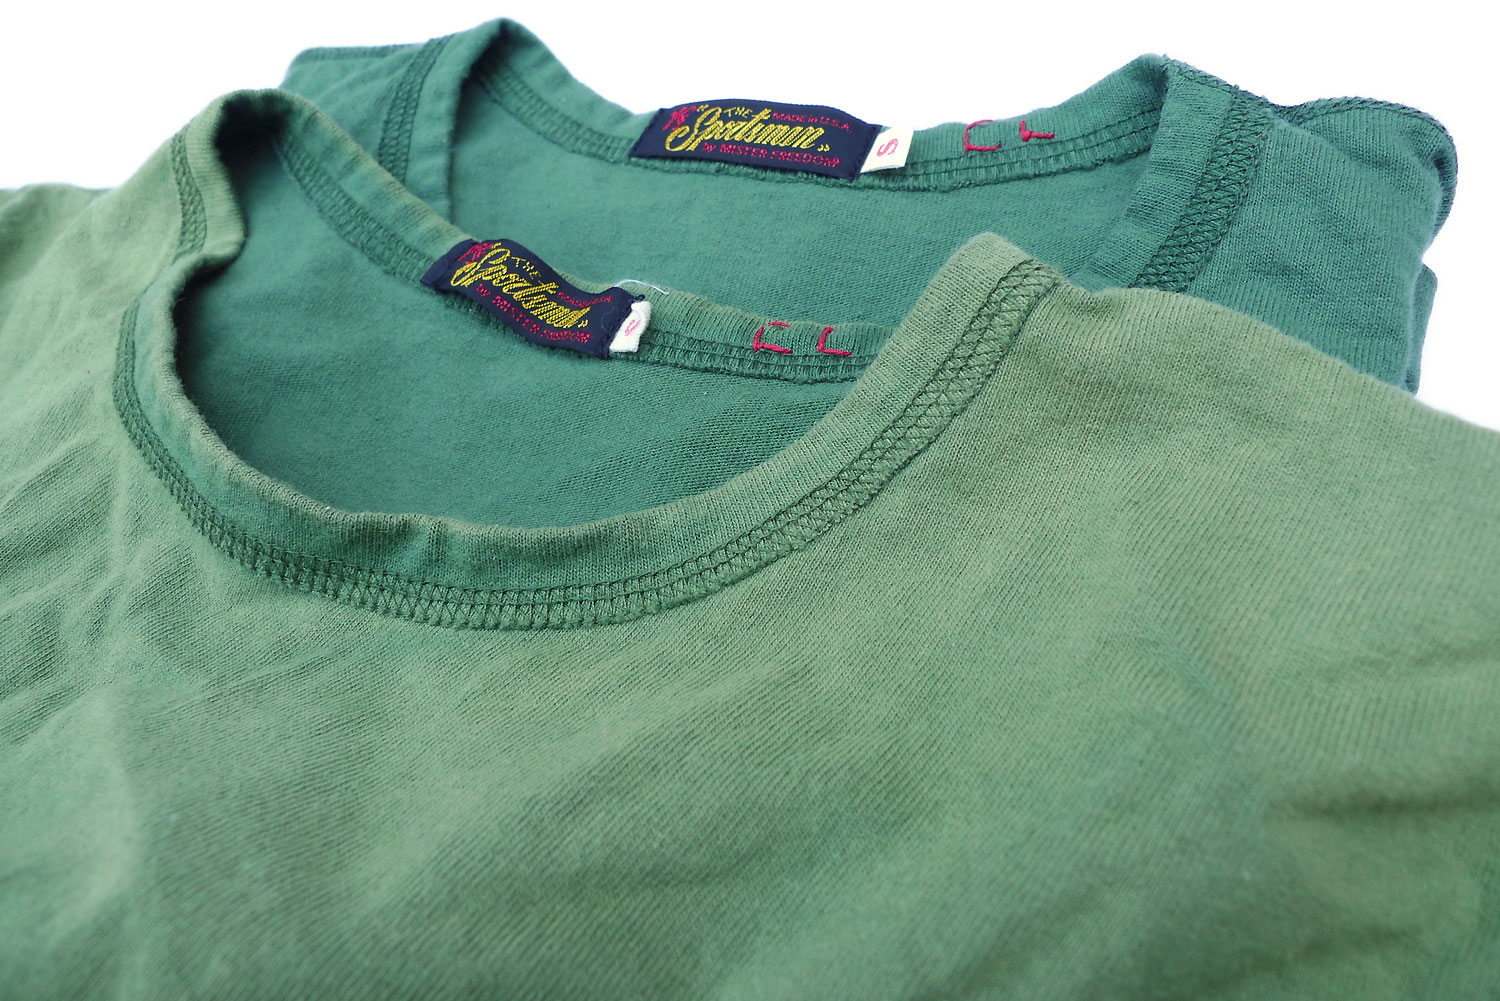 Mister Freedom 174 Skivvy Shirt Sage Green And Navy Blue